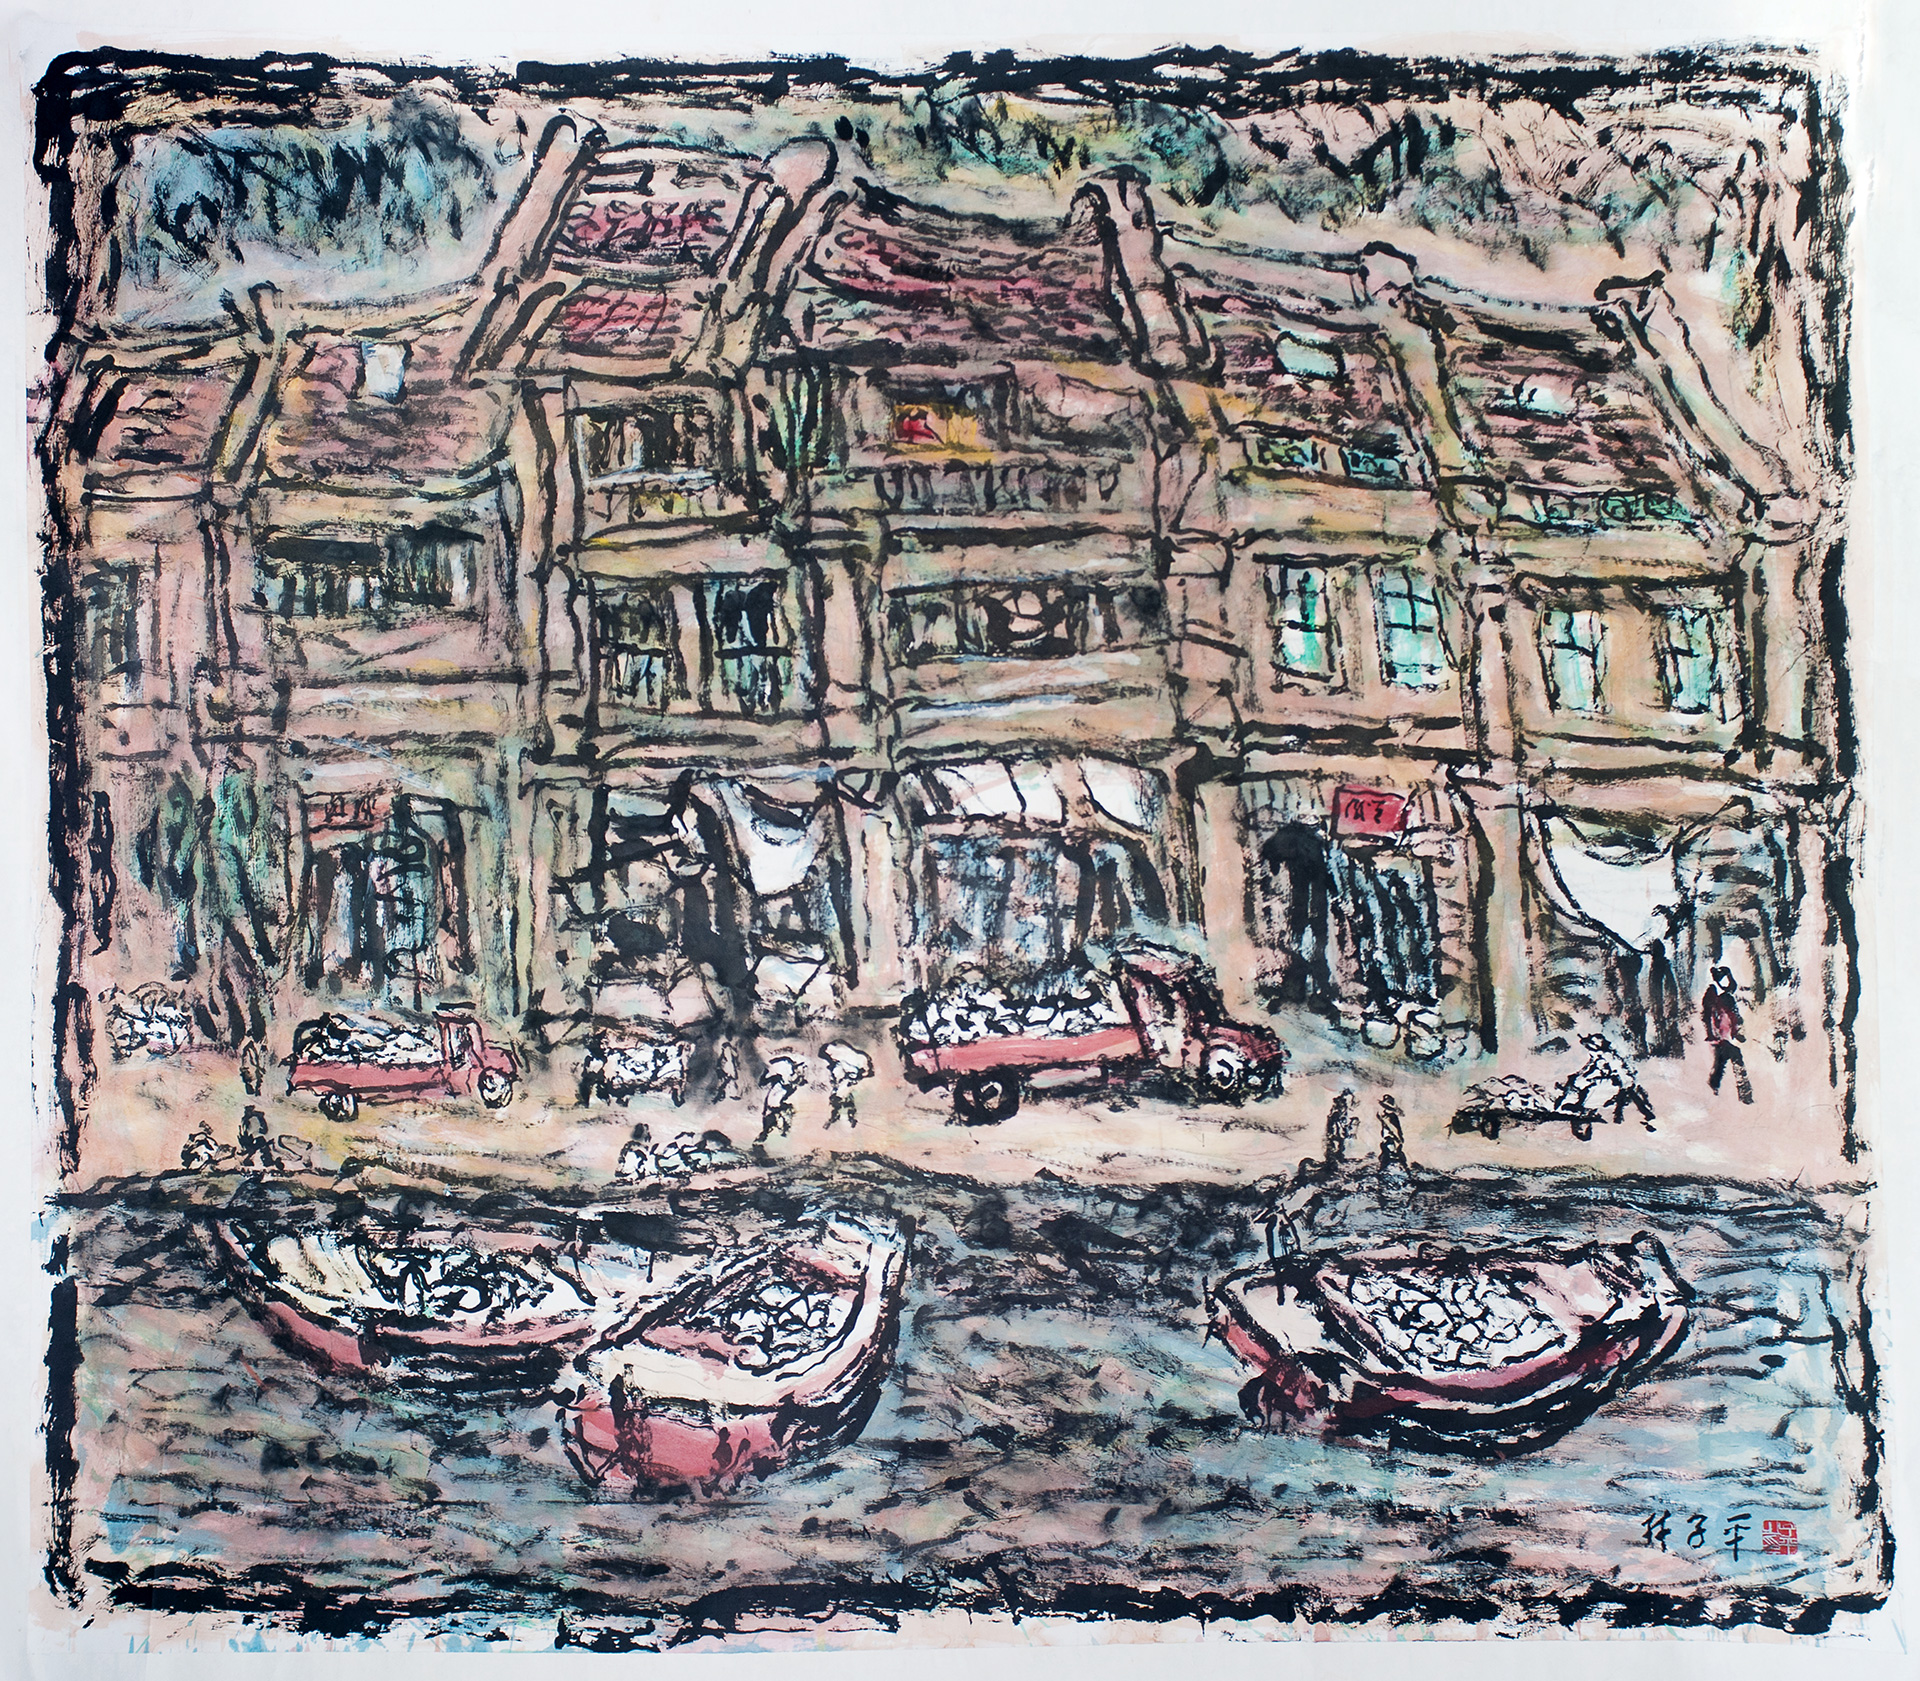 A busy morning at boat Quay, ink on paper, 198 x 229 cm | Lim Tze Peng | Dr Bhau Daji Lad Museum | STIR